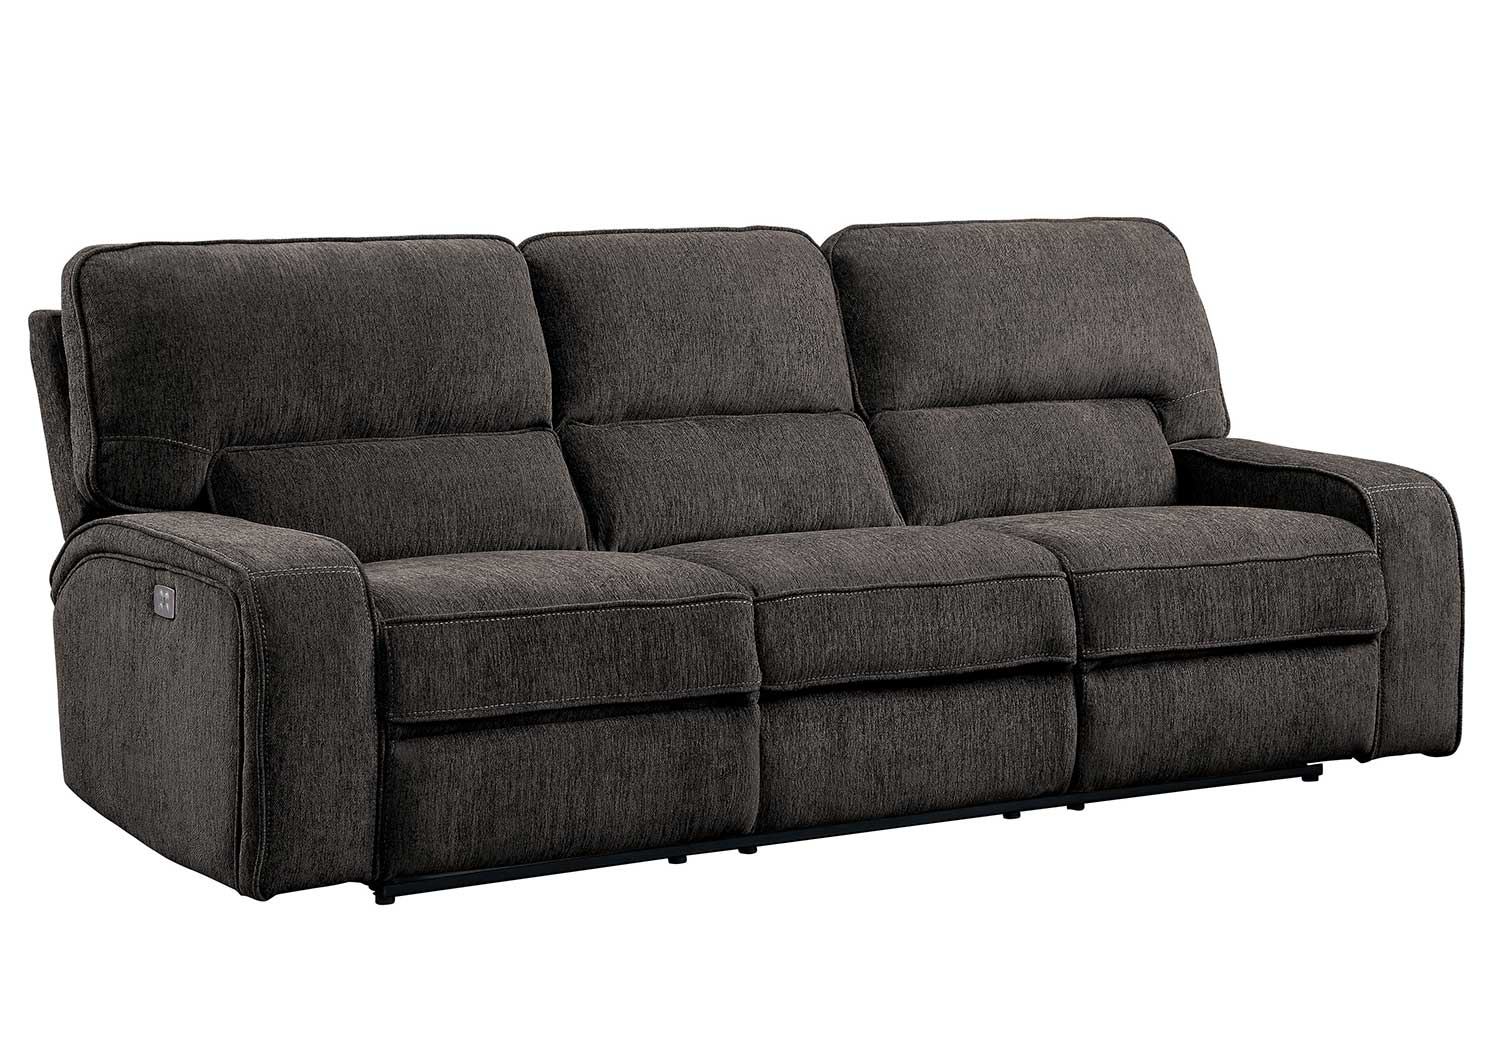 Homelegance Borneo Double Reclining Sofa - Chocolate